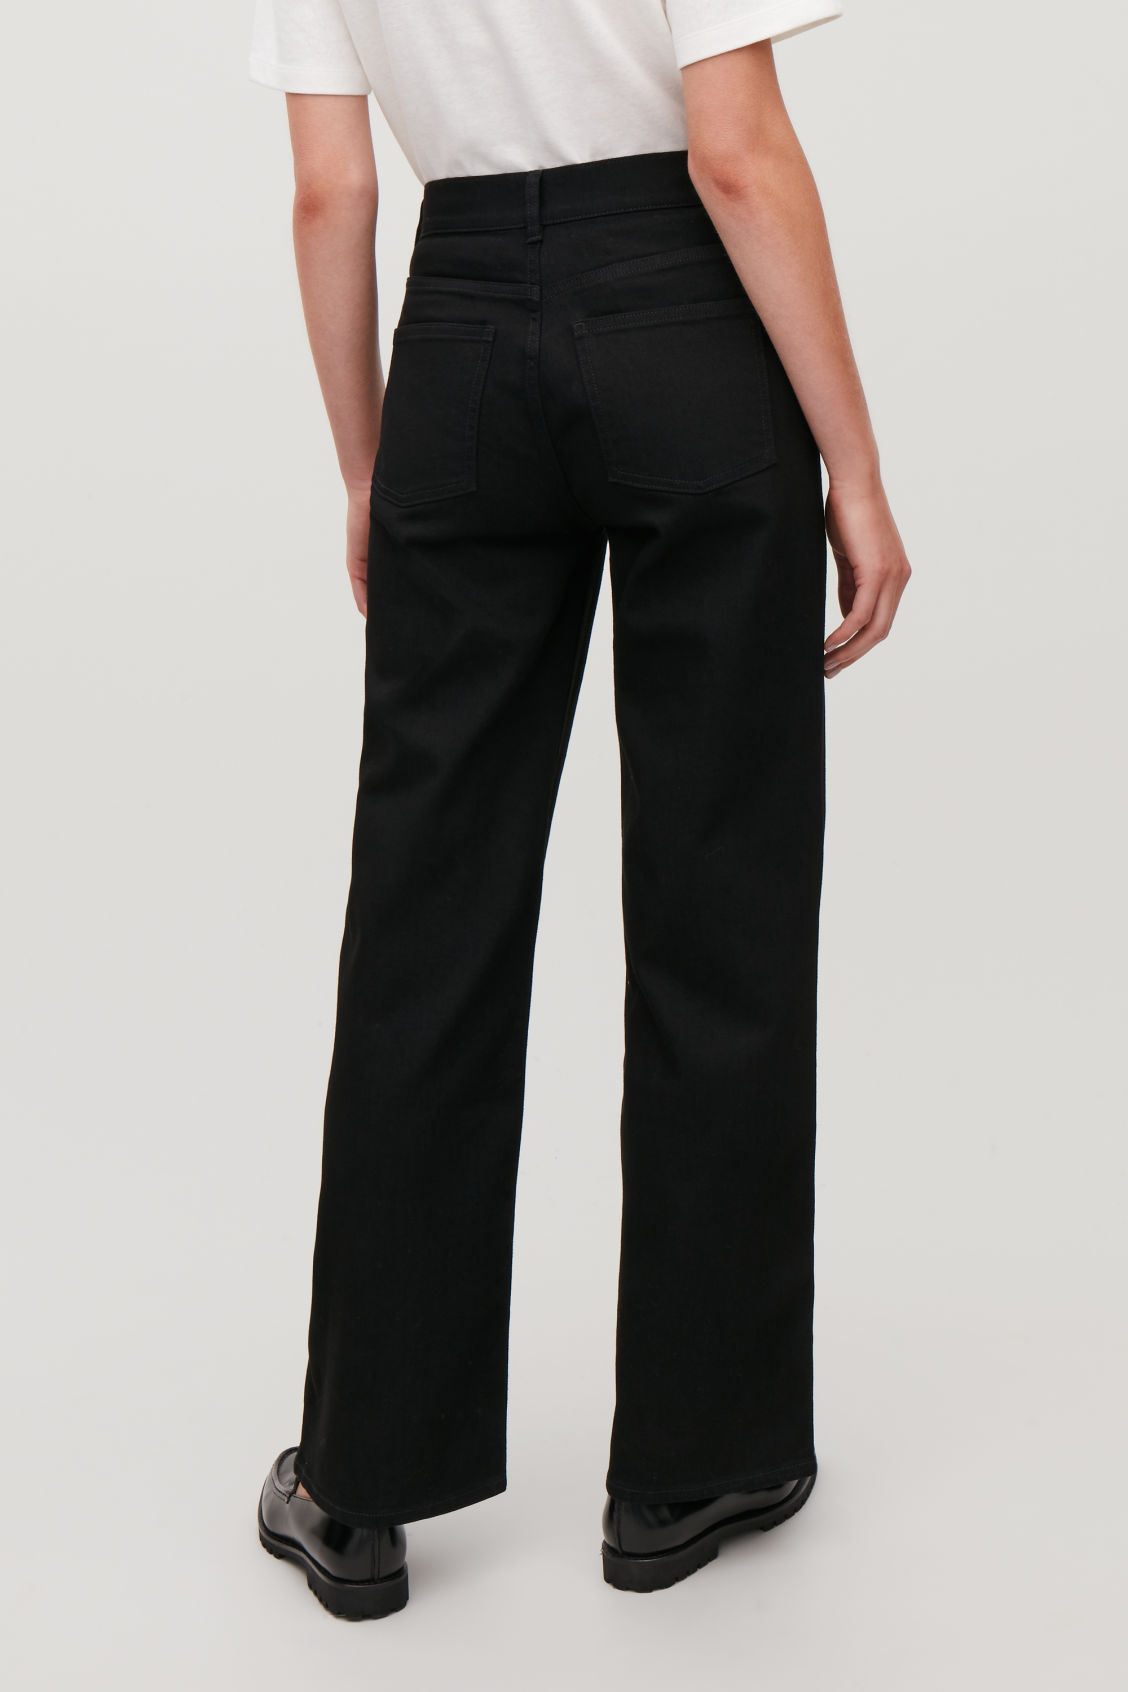 Model side image of Cos 32 inch wide leg jeans in black